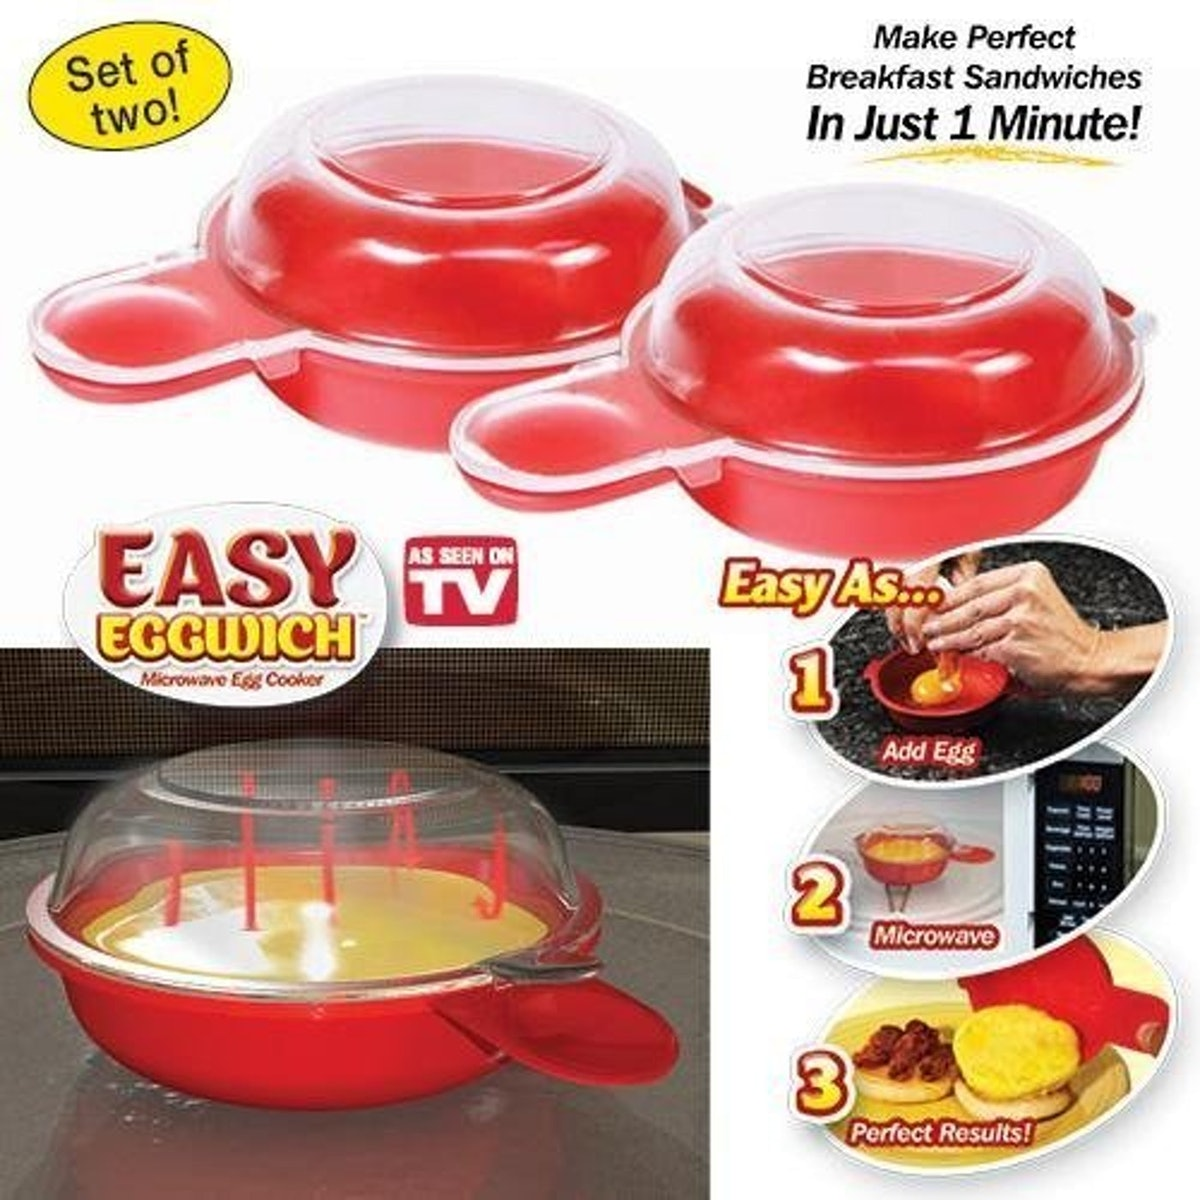 Easy Eggwich Microwave Egg Cookers (Set Of 2)